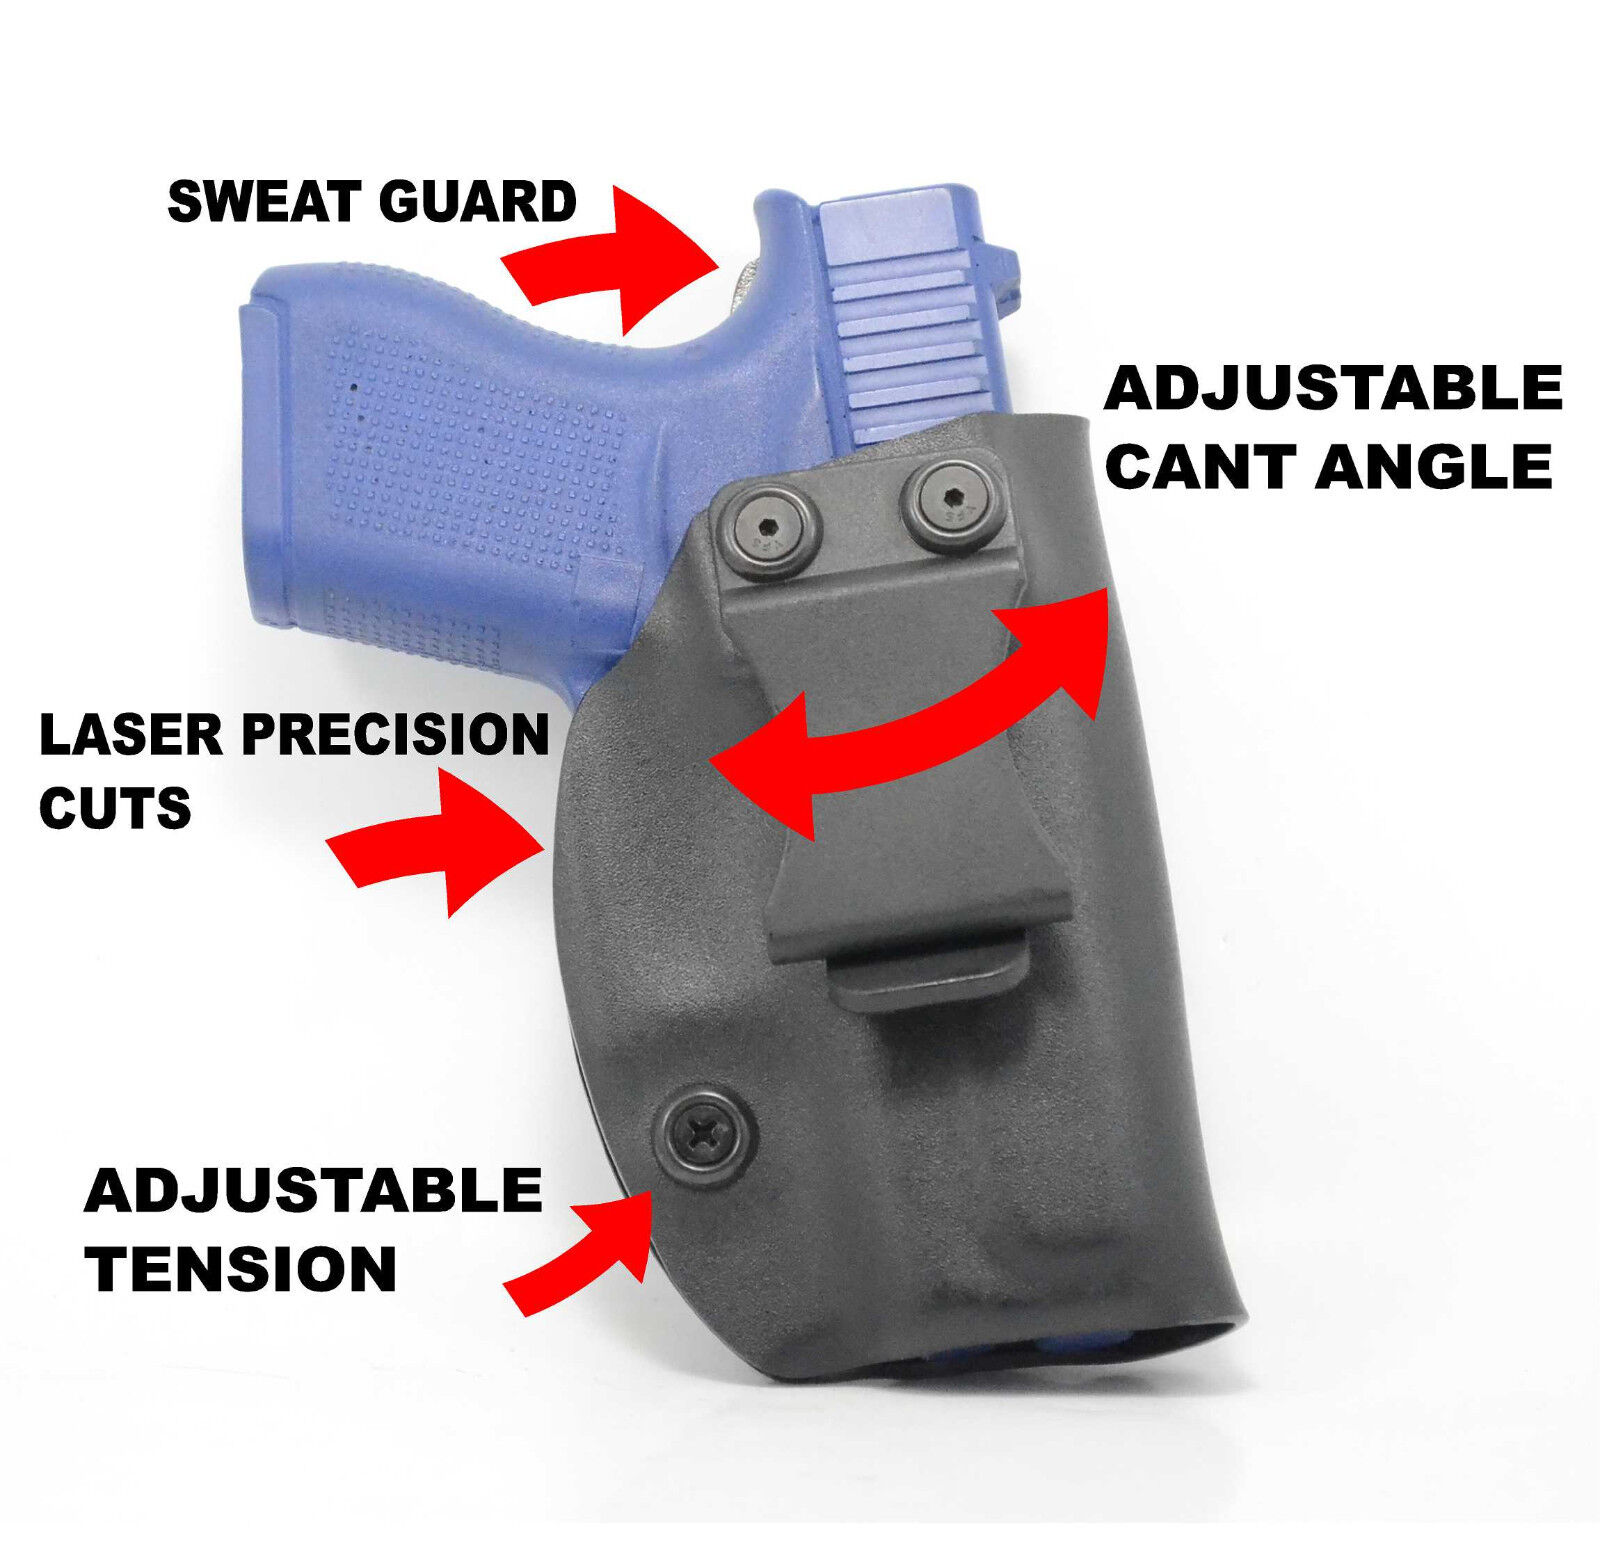 Concealment IWB Adjustable Cant Holster for Glock Handguns